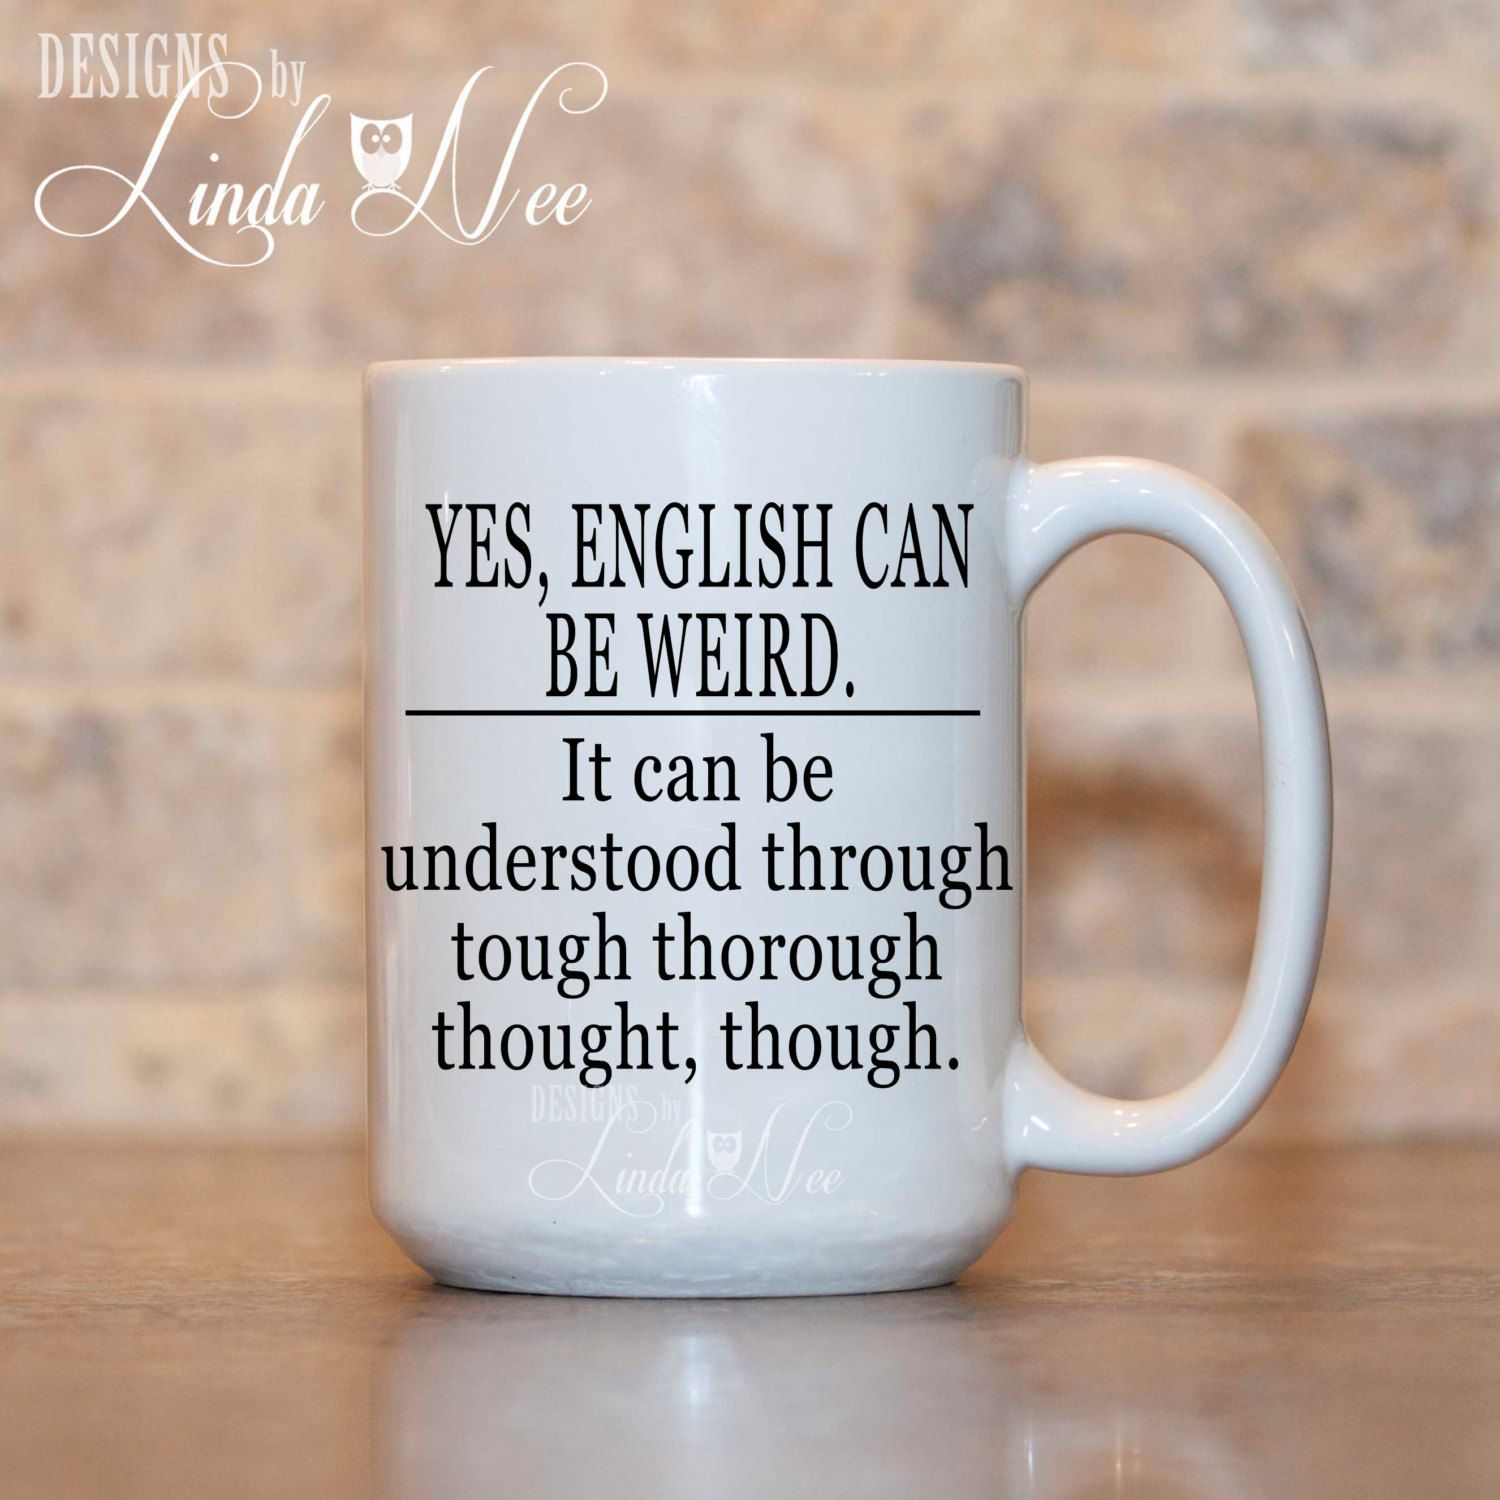 Weird Mugs English Can Be Weird Coffee Mug Grammar Coffee Mug Mugs